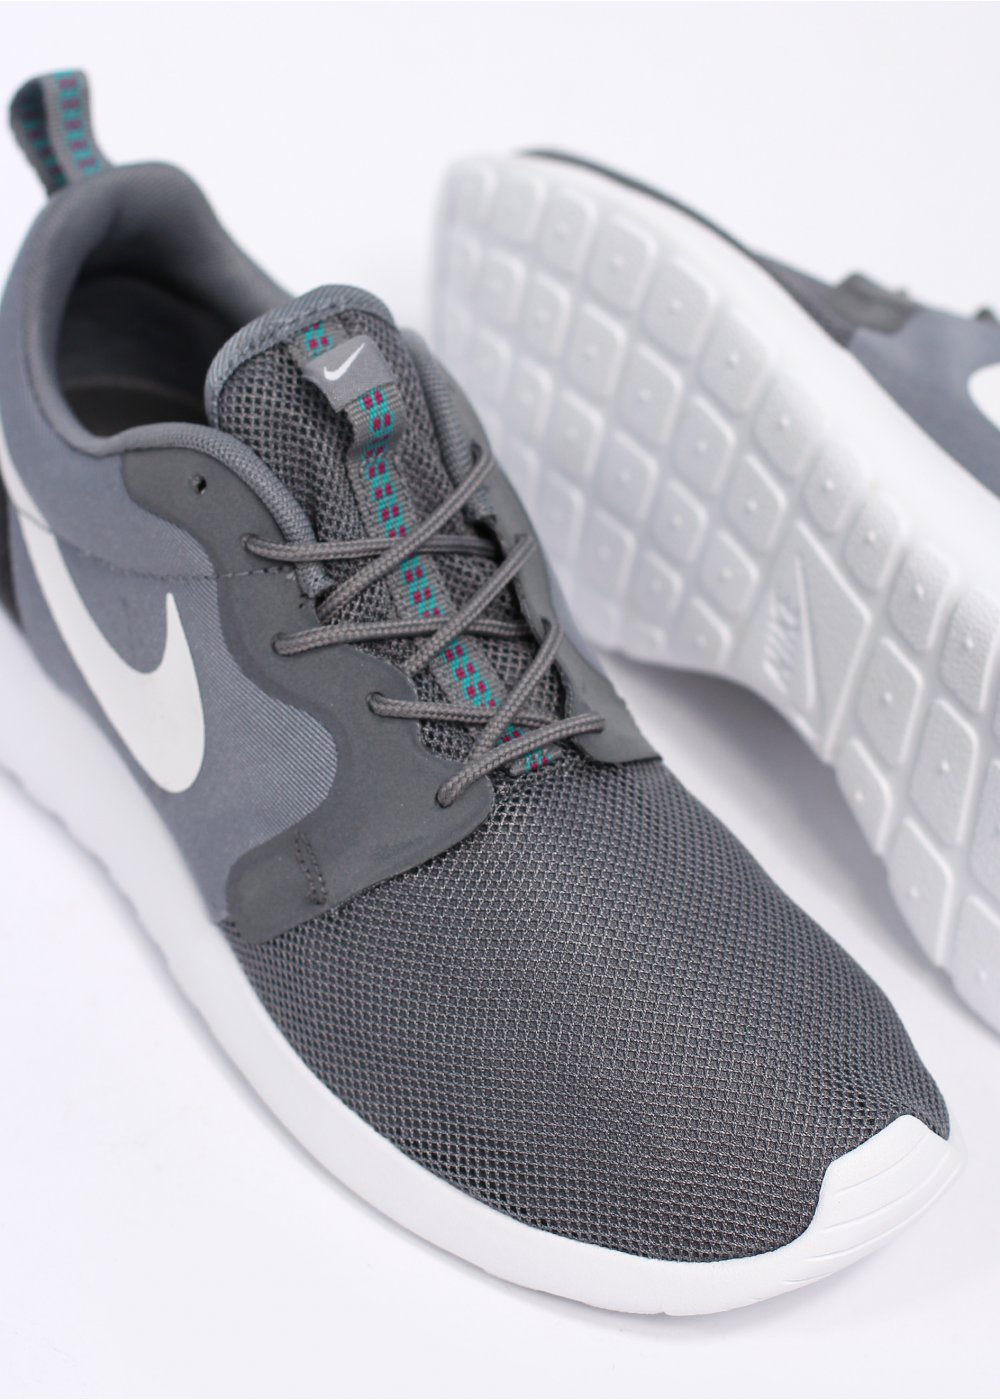 46afd298118d Nike Roshe Run HYPERFUSE - Cool Grey   Anthracite   Turbo Green   WHITE